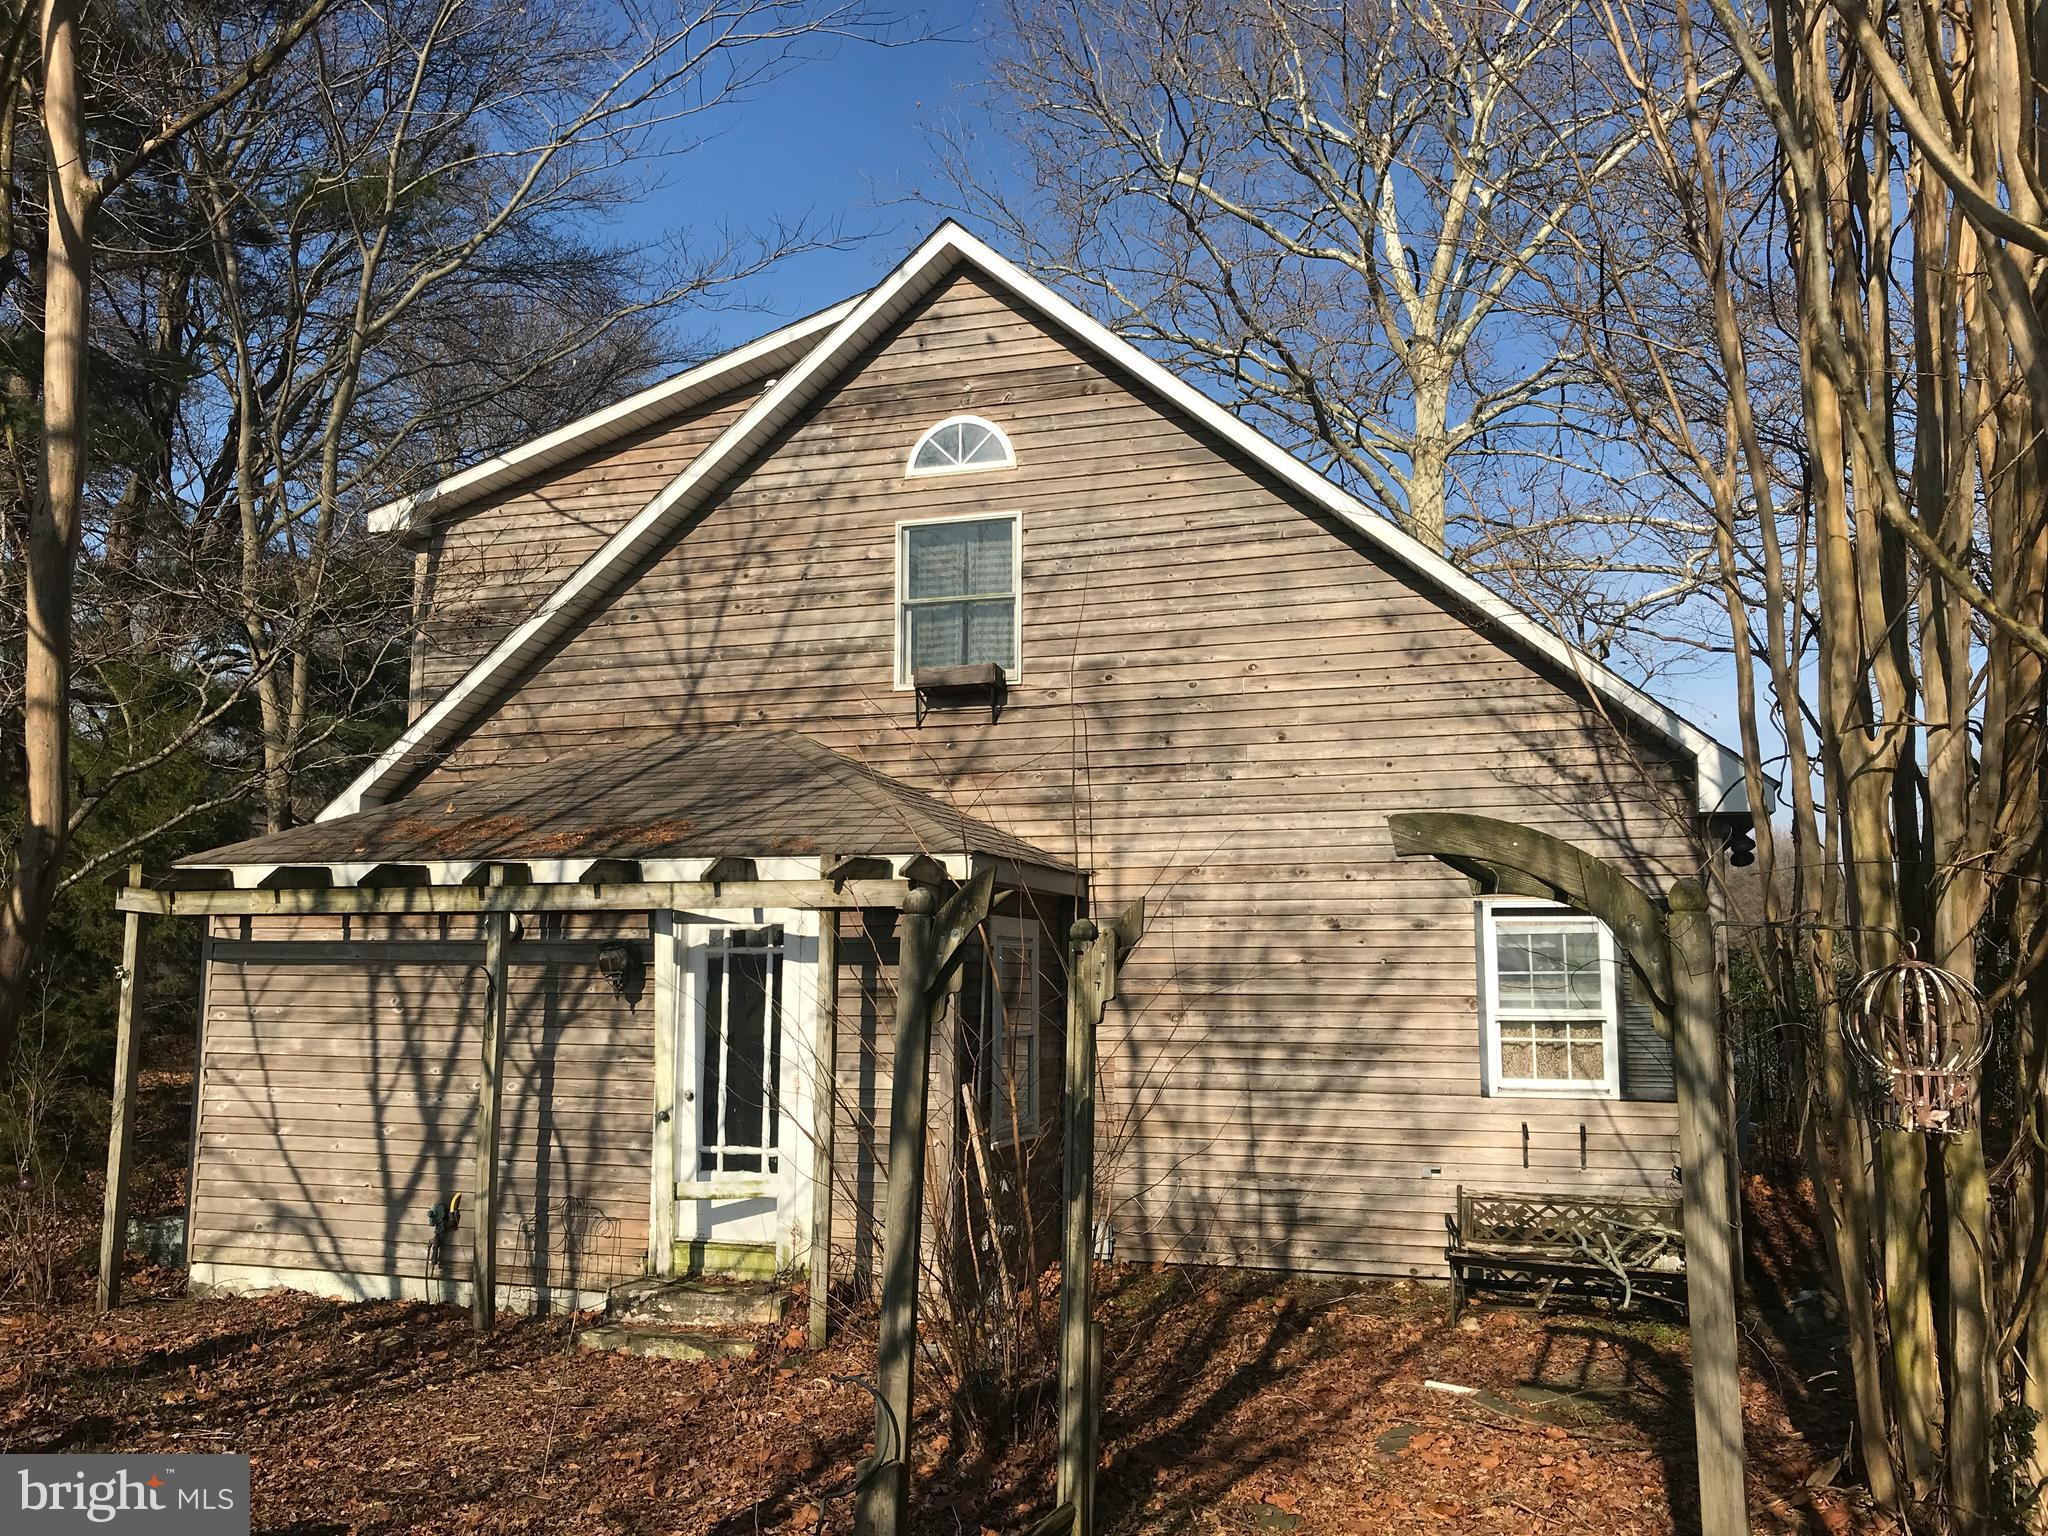 Waterfront 2 bedroom cabin on Hearns Pond! Two story home with upstairs loft with waterview deck! Sc